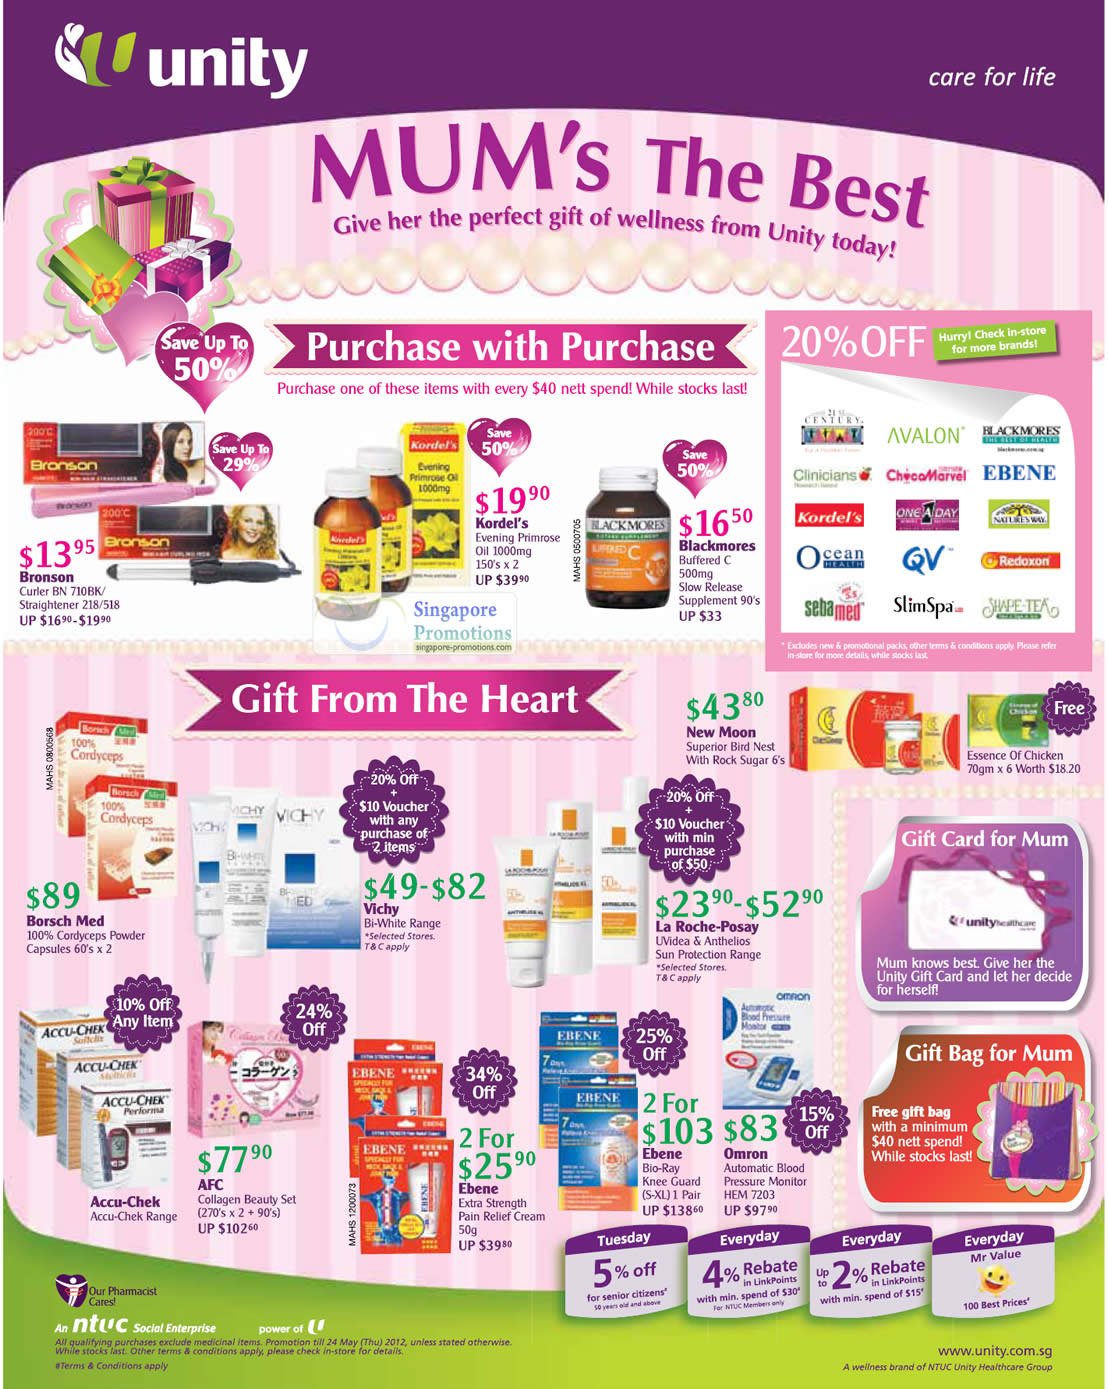 11 May Mothers Day Gift Ideas » NTUC Unity Health Offers ...